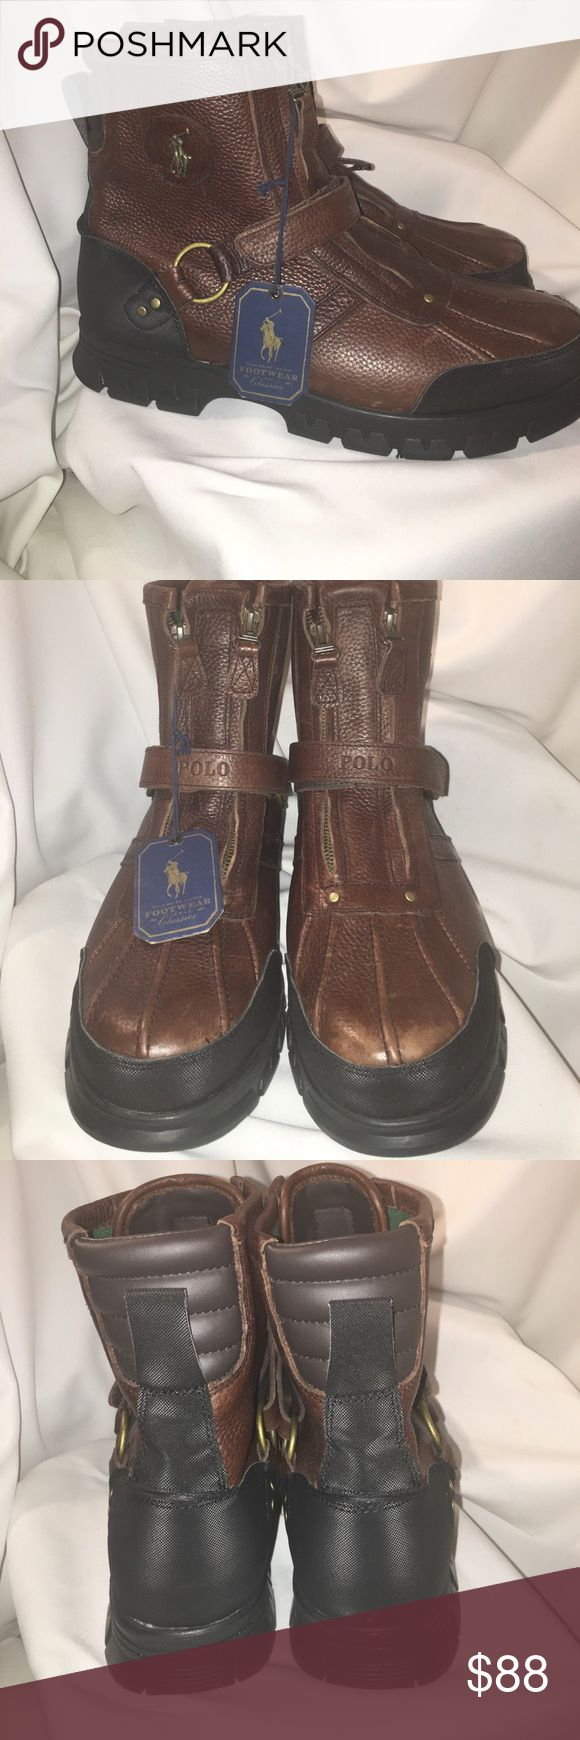 Men's BRAND NEW Polo boots Mens BRAND NEW Polo boots Polo by Ralph Lauren Shoes Boots